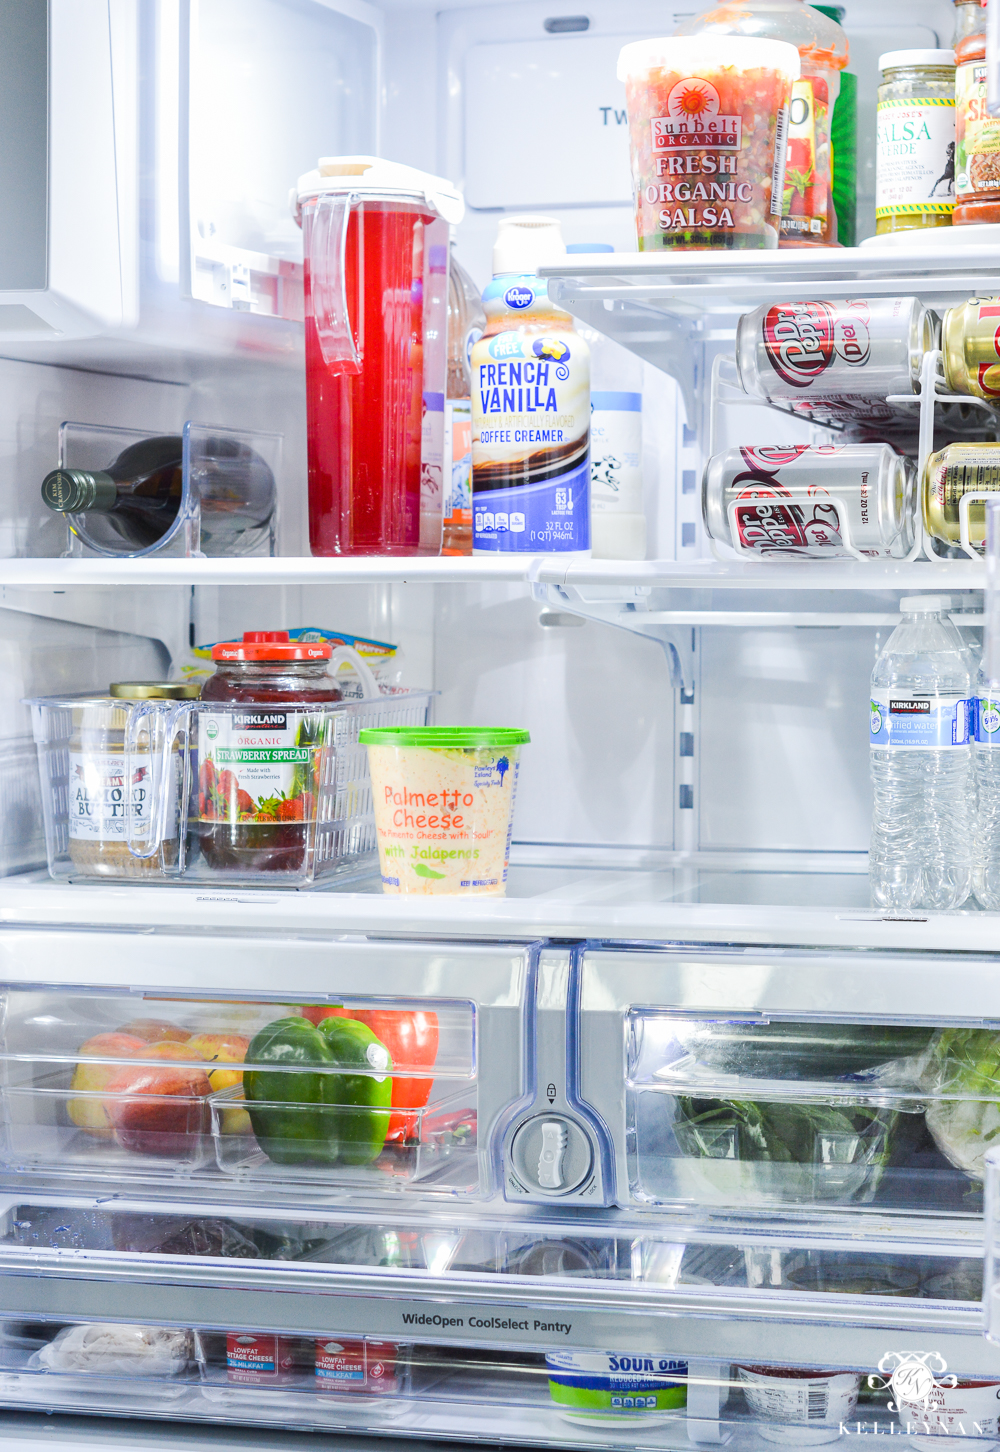 Refrigerator Organization and Best Ways to Organize the Fridge- before and after